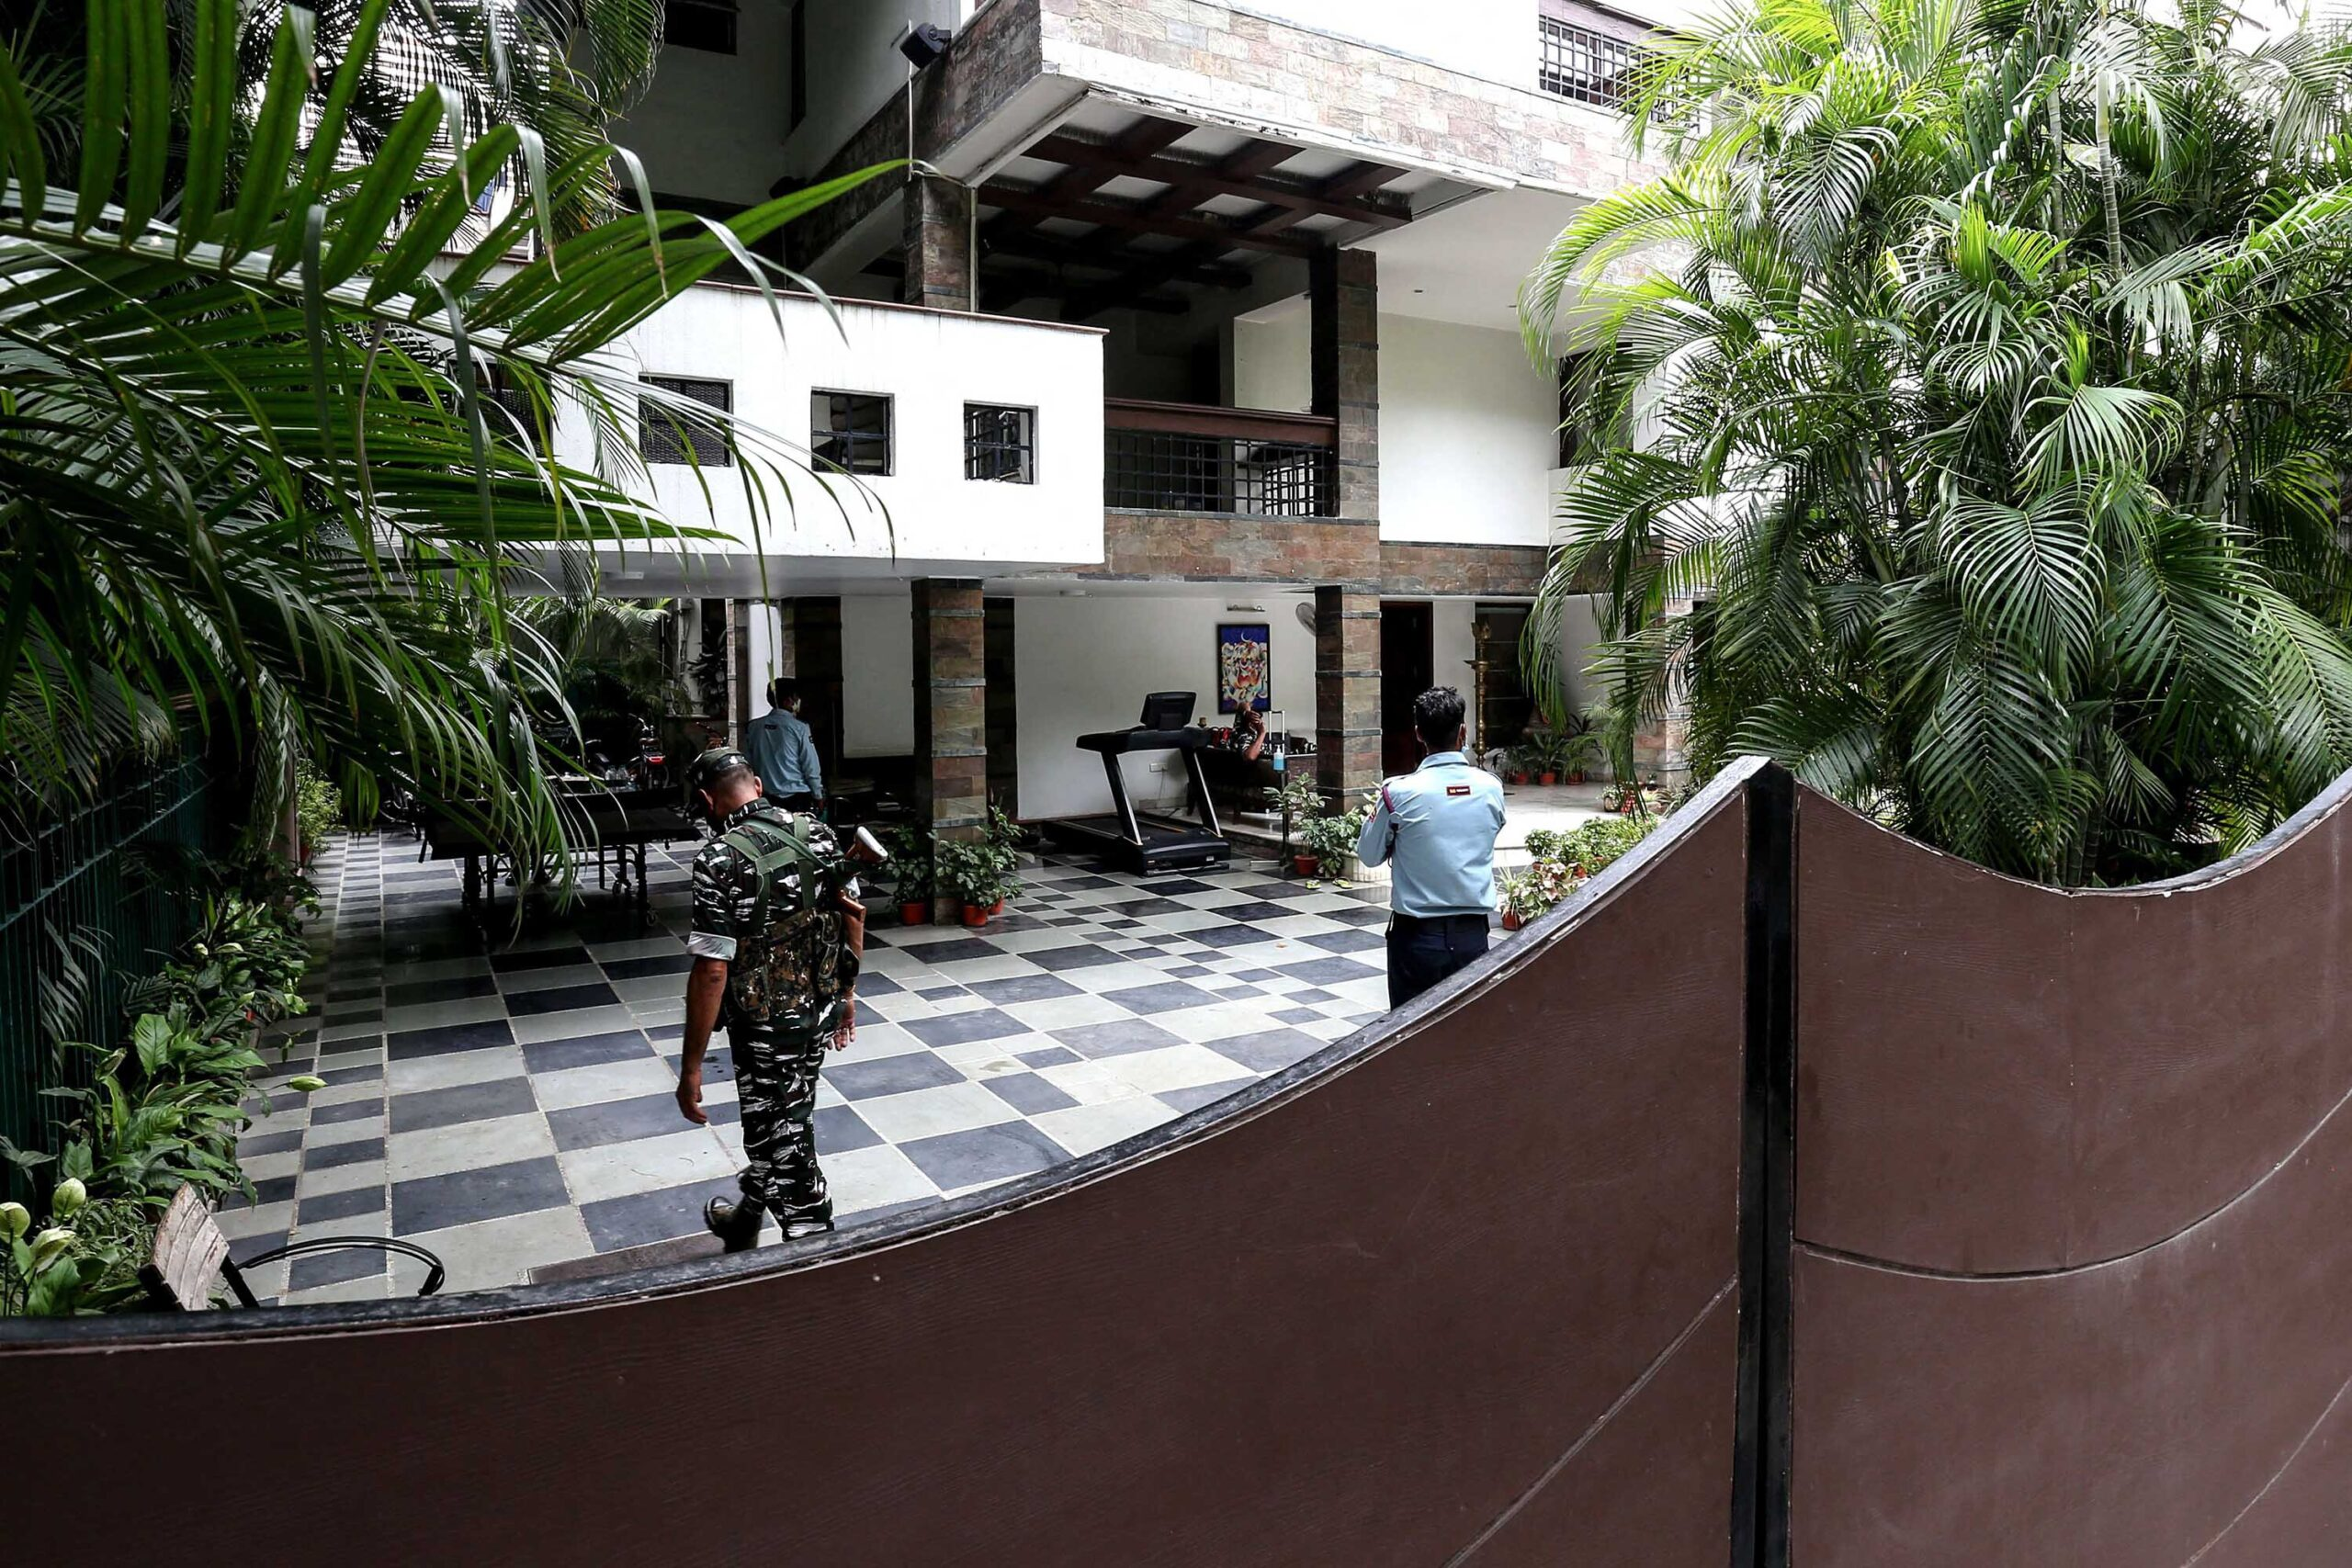 <i>GAGAN NAYAR/AFP/Getty Images</i><br/>Security personnel at the residence of Sudhir Agrawal